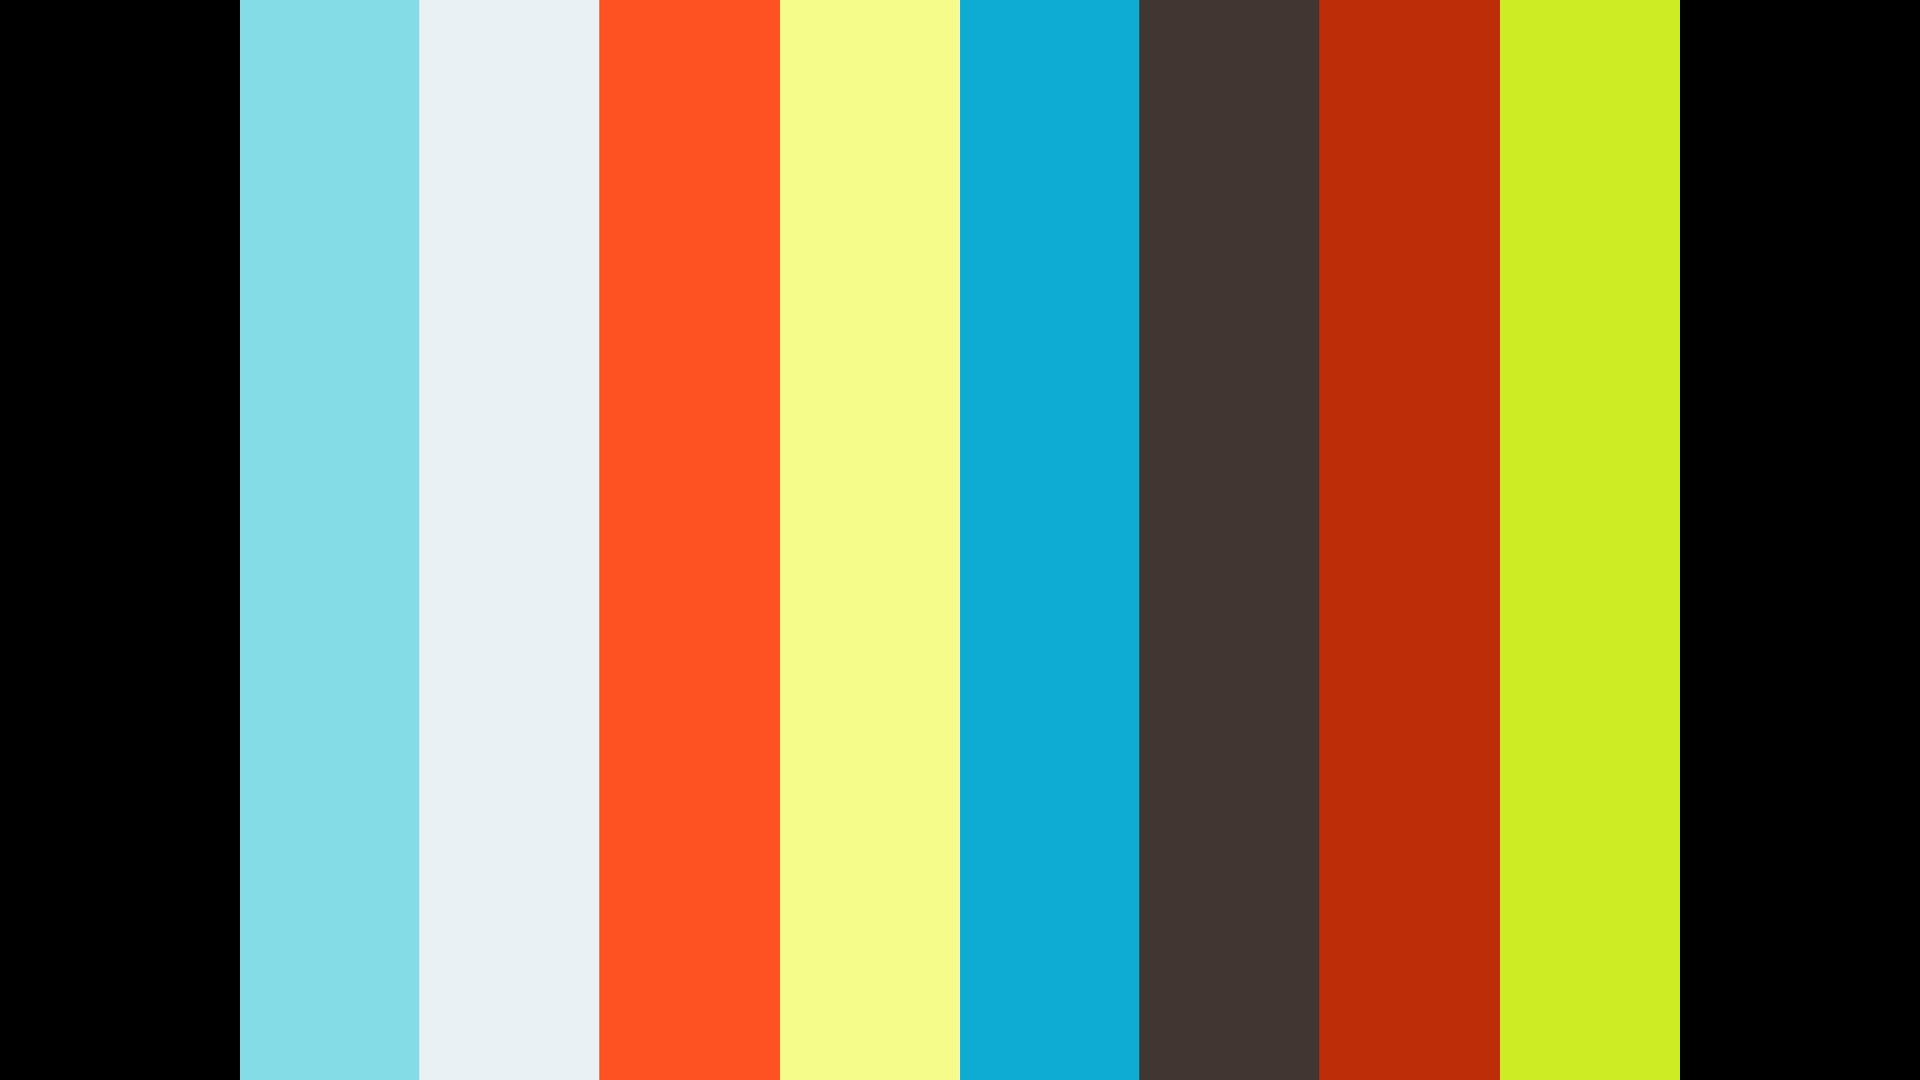 VIEWWorx: Creating Named Views and Layout Drawings Made Easy